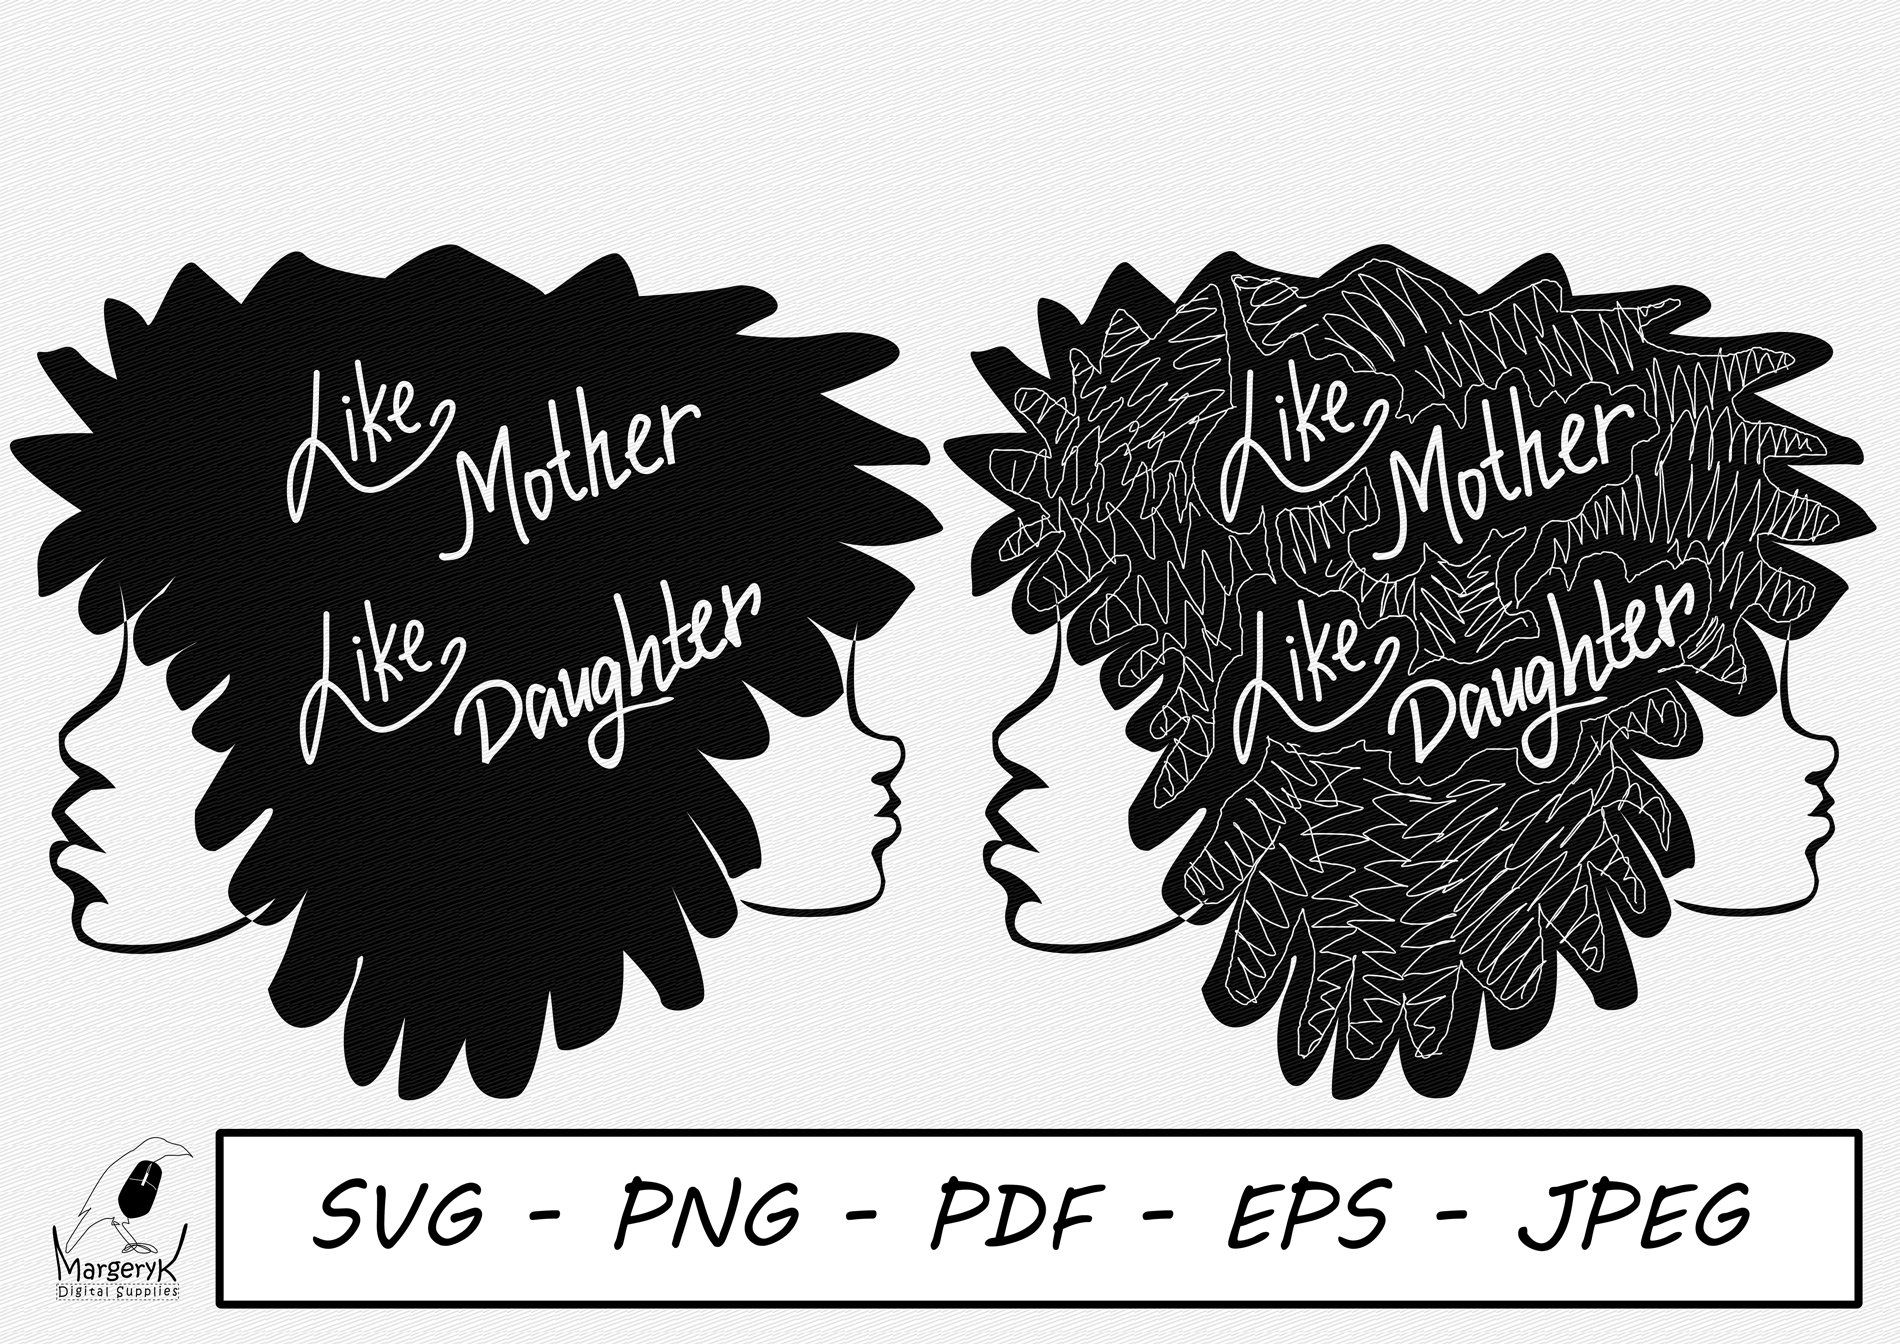 Free Mother day badge icons png svg eps ics and icon font are available. Like Mother Like Daughter Svg Mothers Day Svg Matching Mother Etsy Tattoos For Daughters African Queen Tattoo Father Daughter Tattoos SVG, PNG, EPS, DXF File